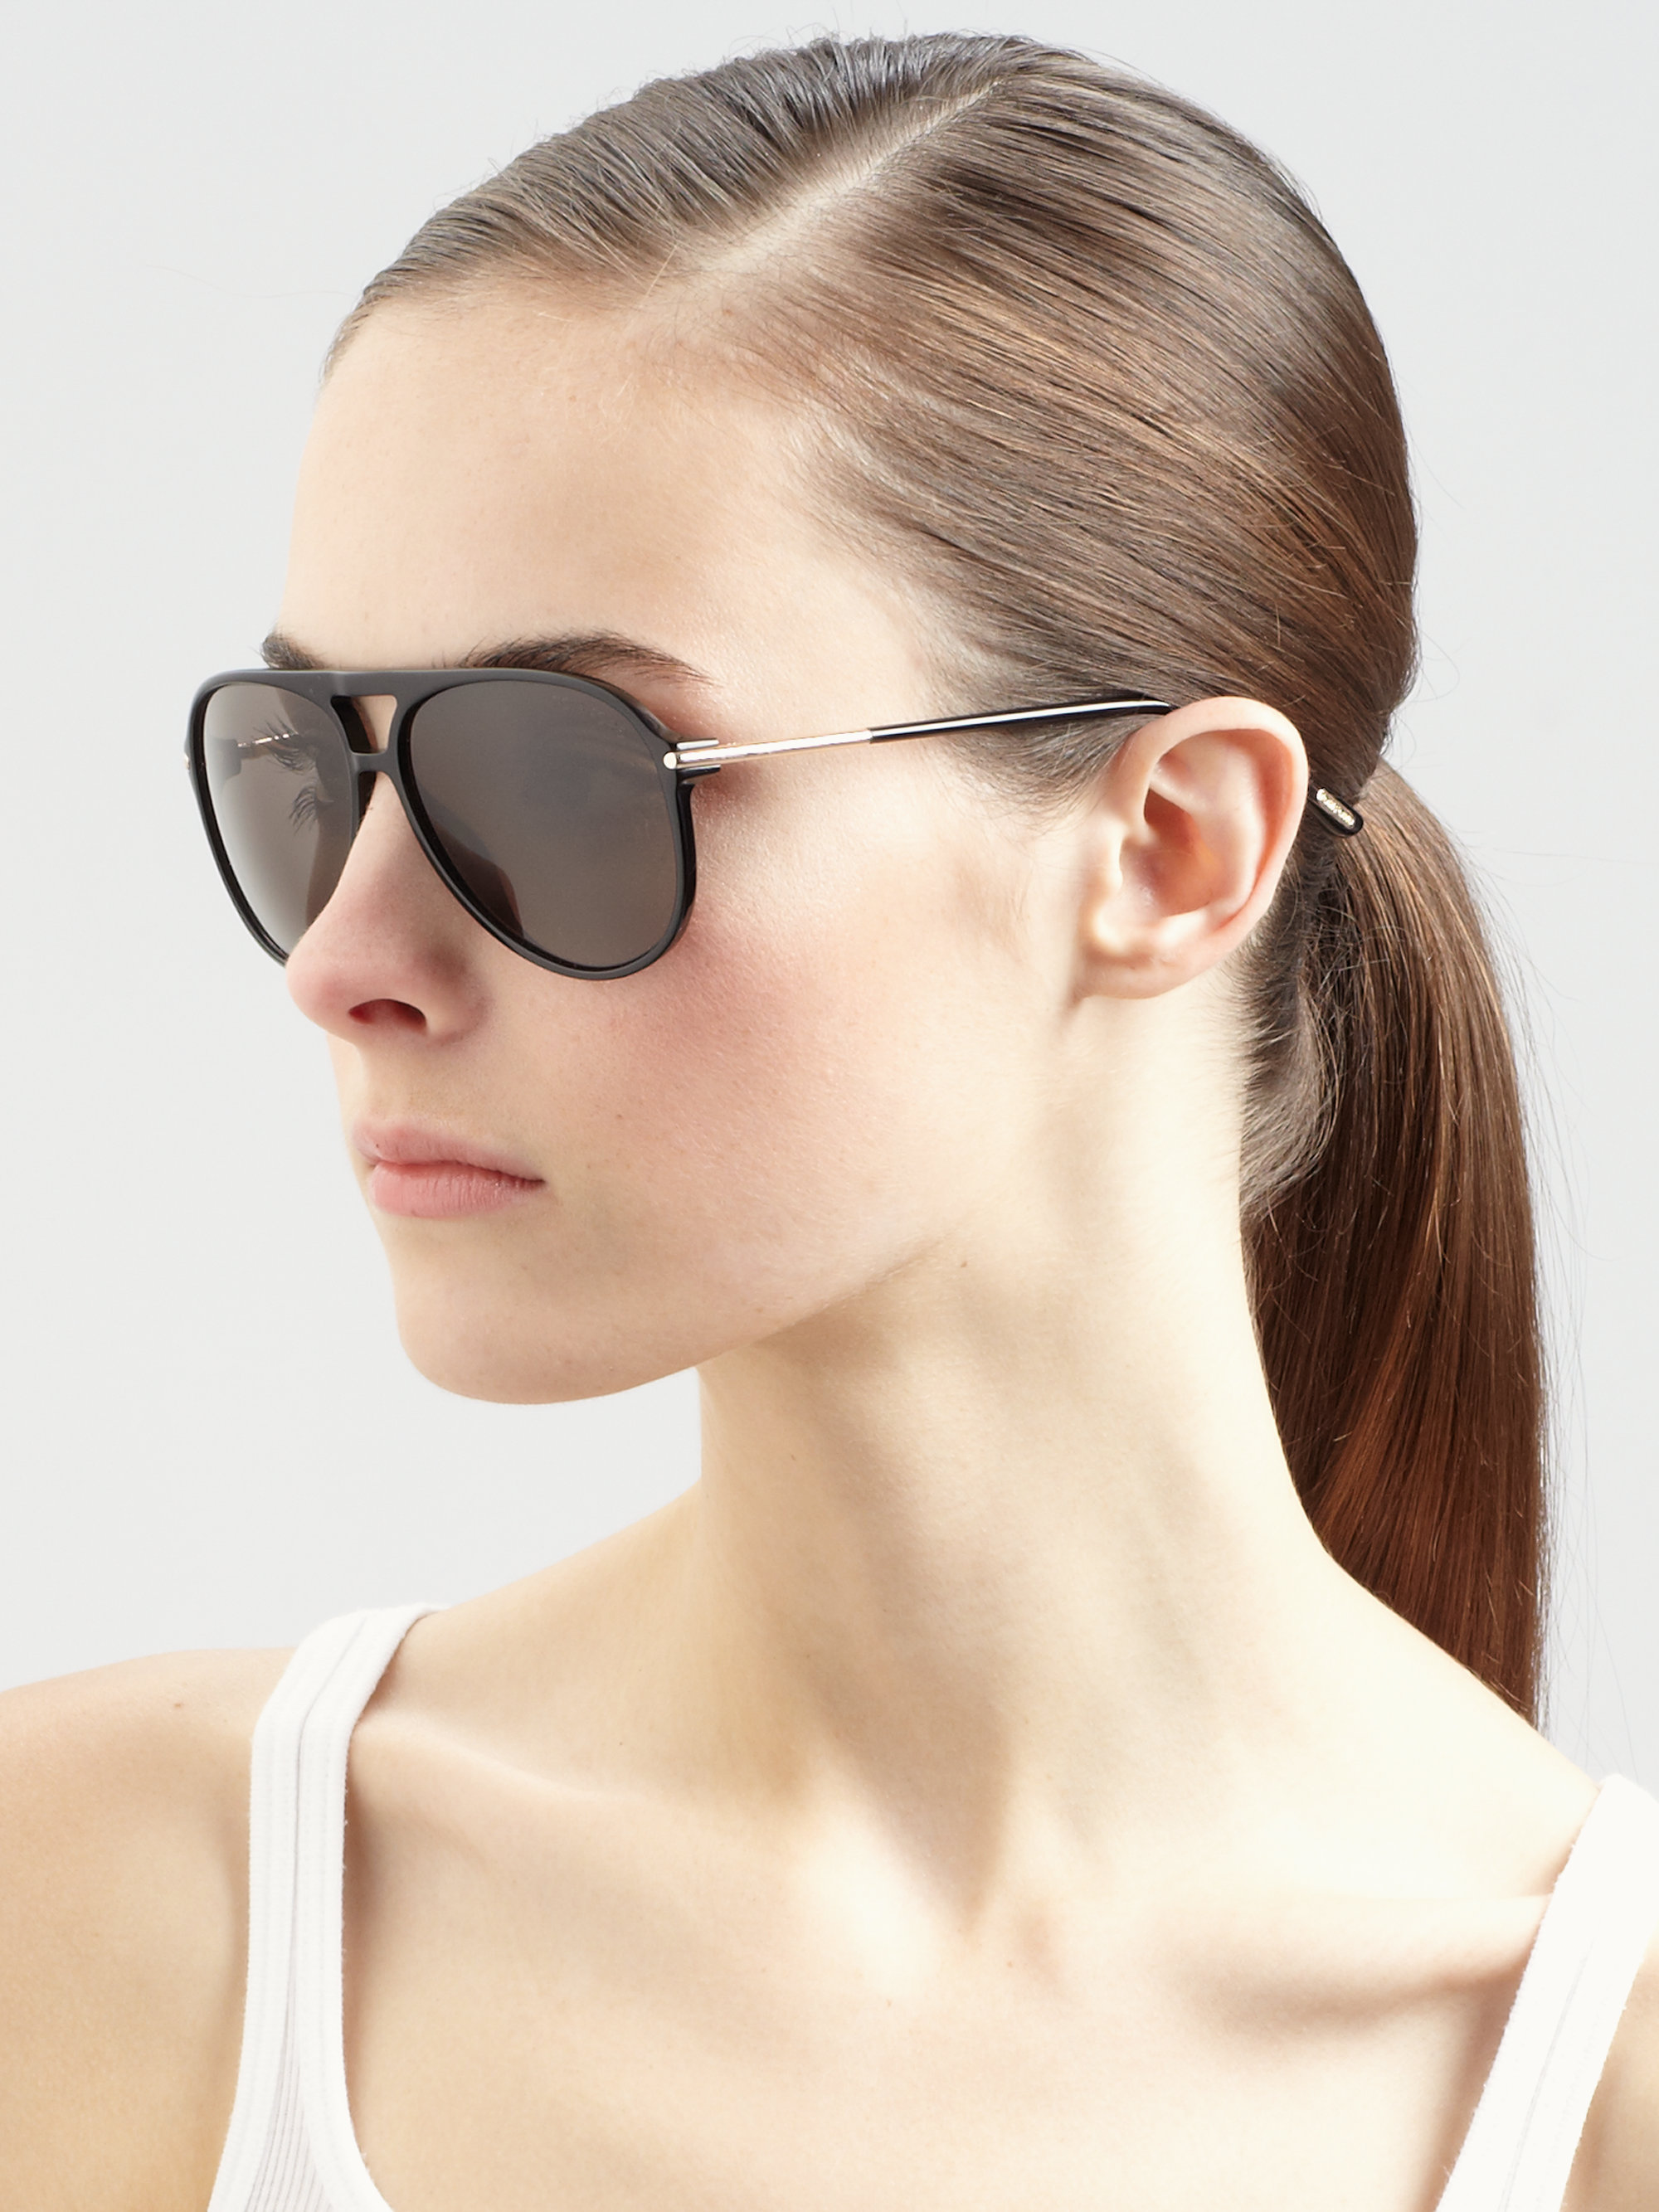 Aviator sunglasses for women - Gallery